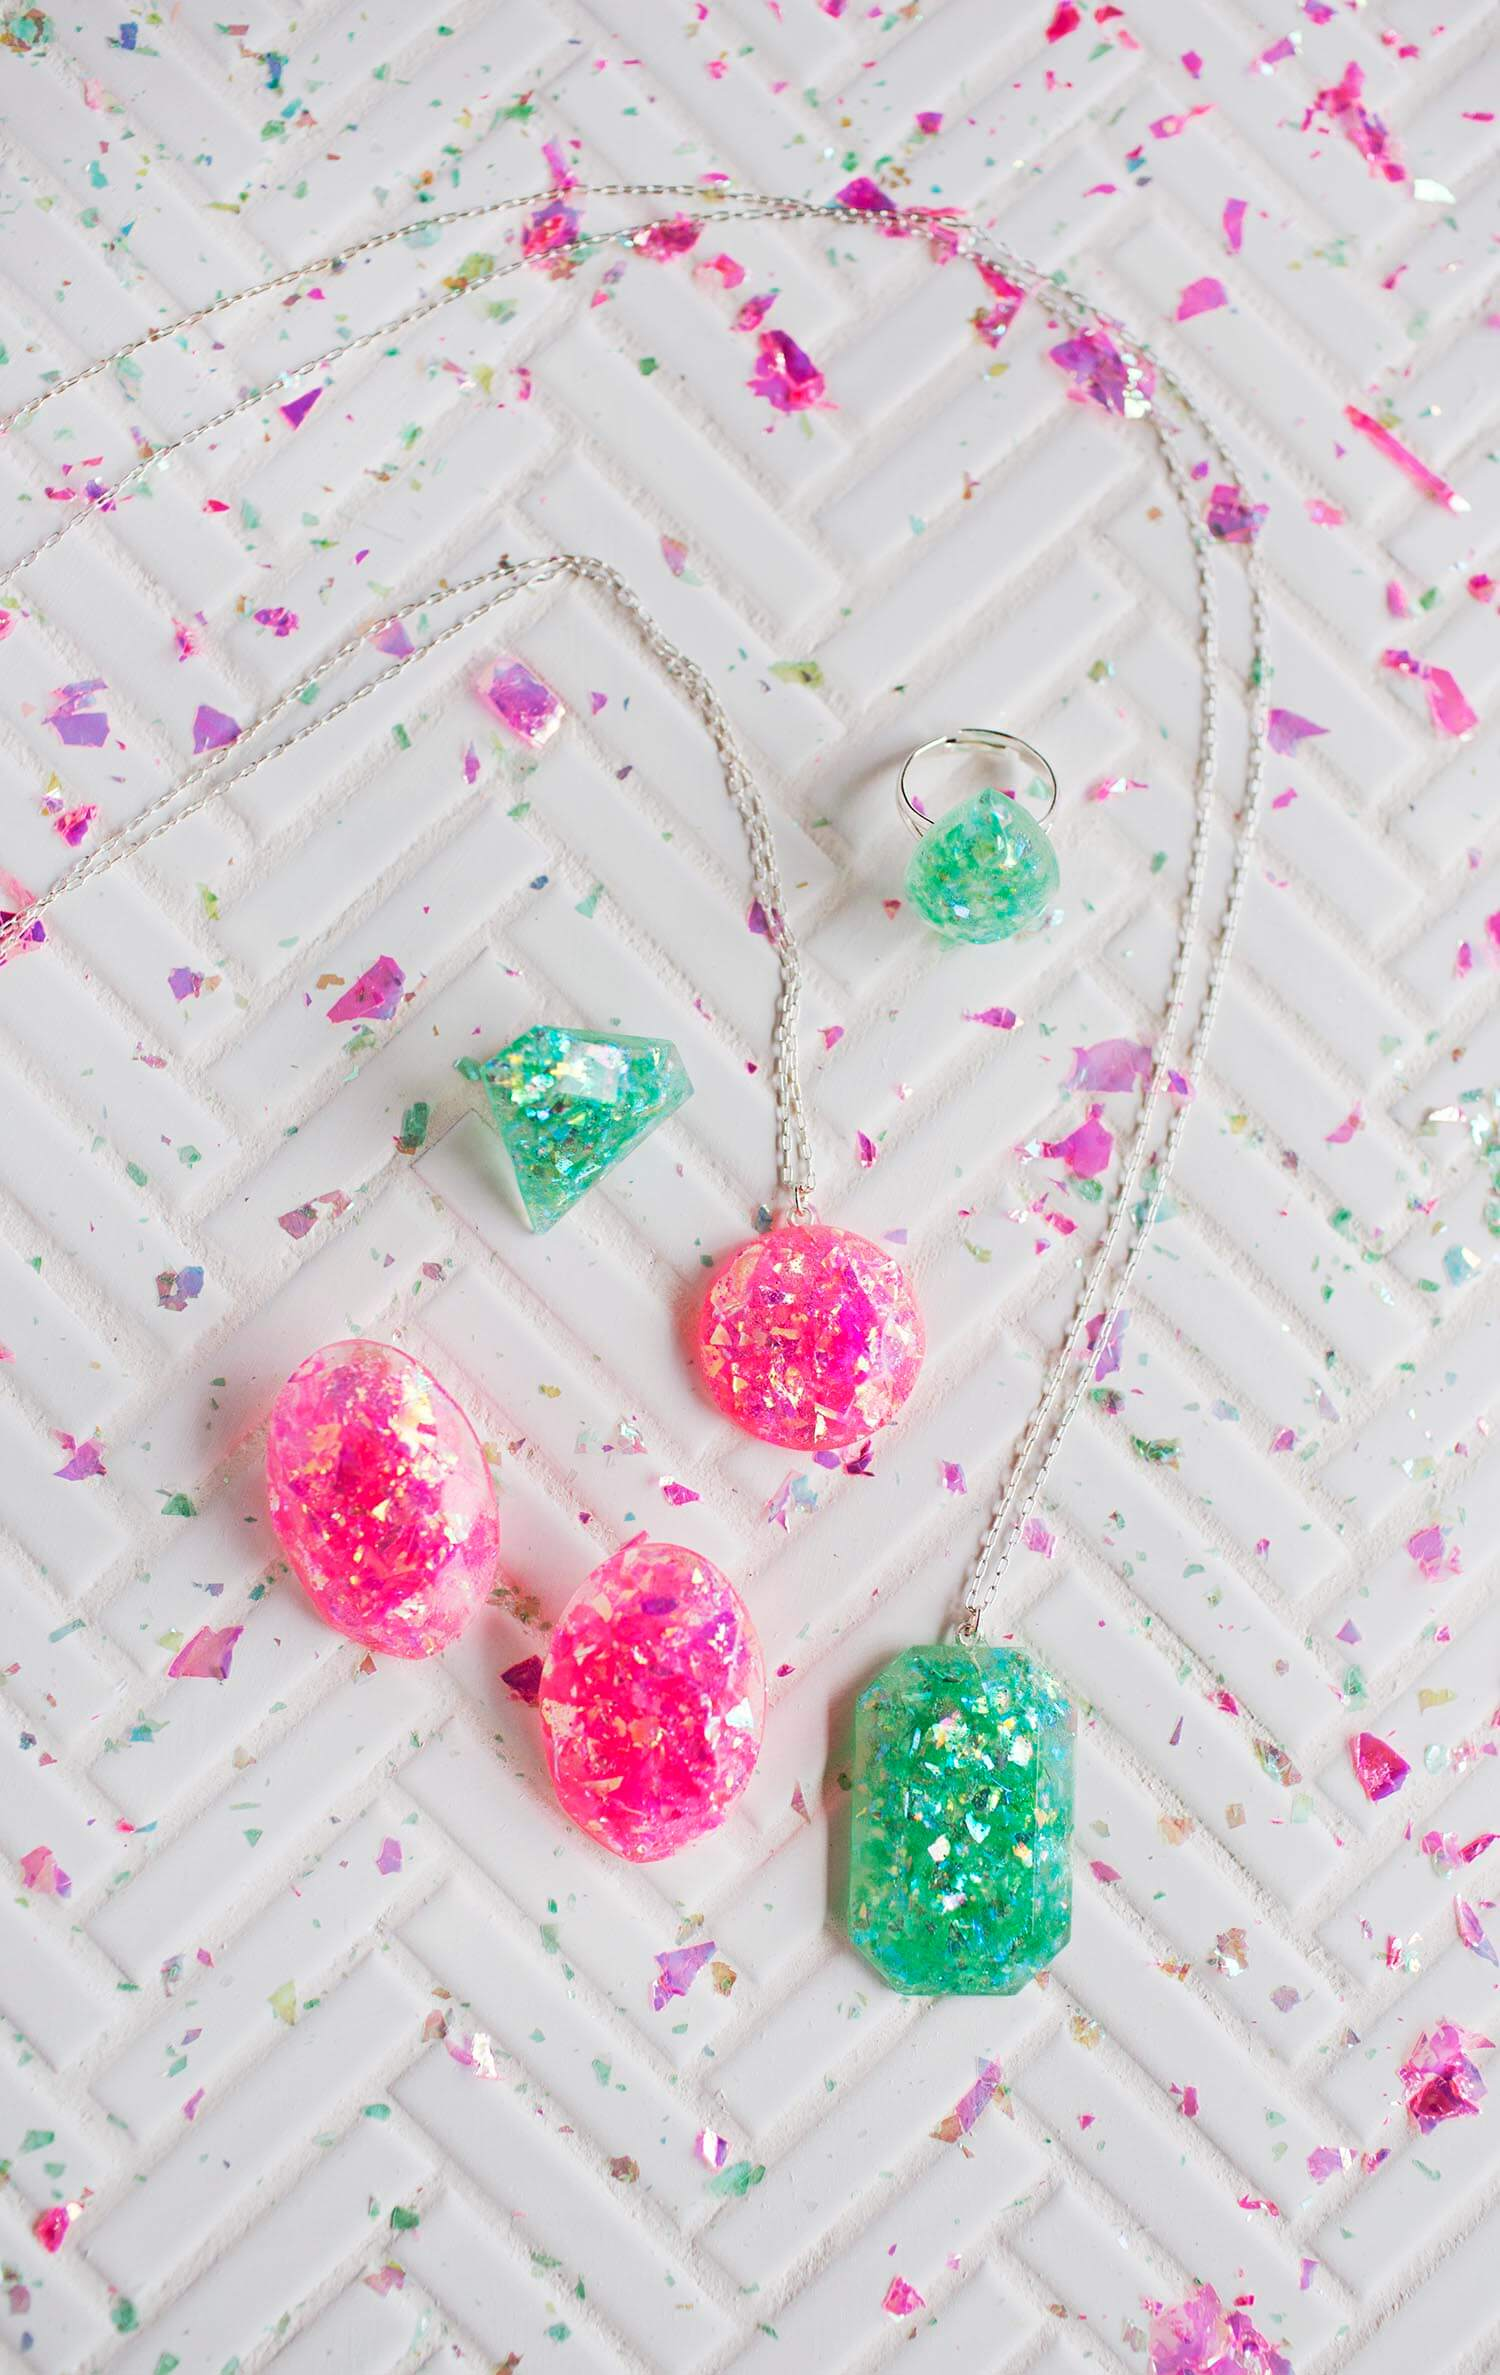 DIY Epoxy Resin Jewelry (via abeautifulmess.com)